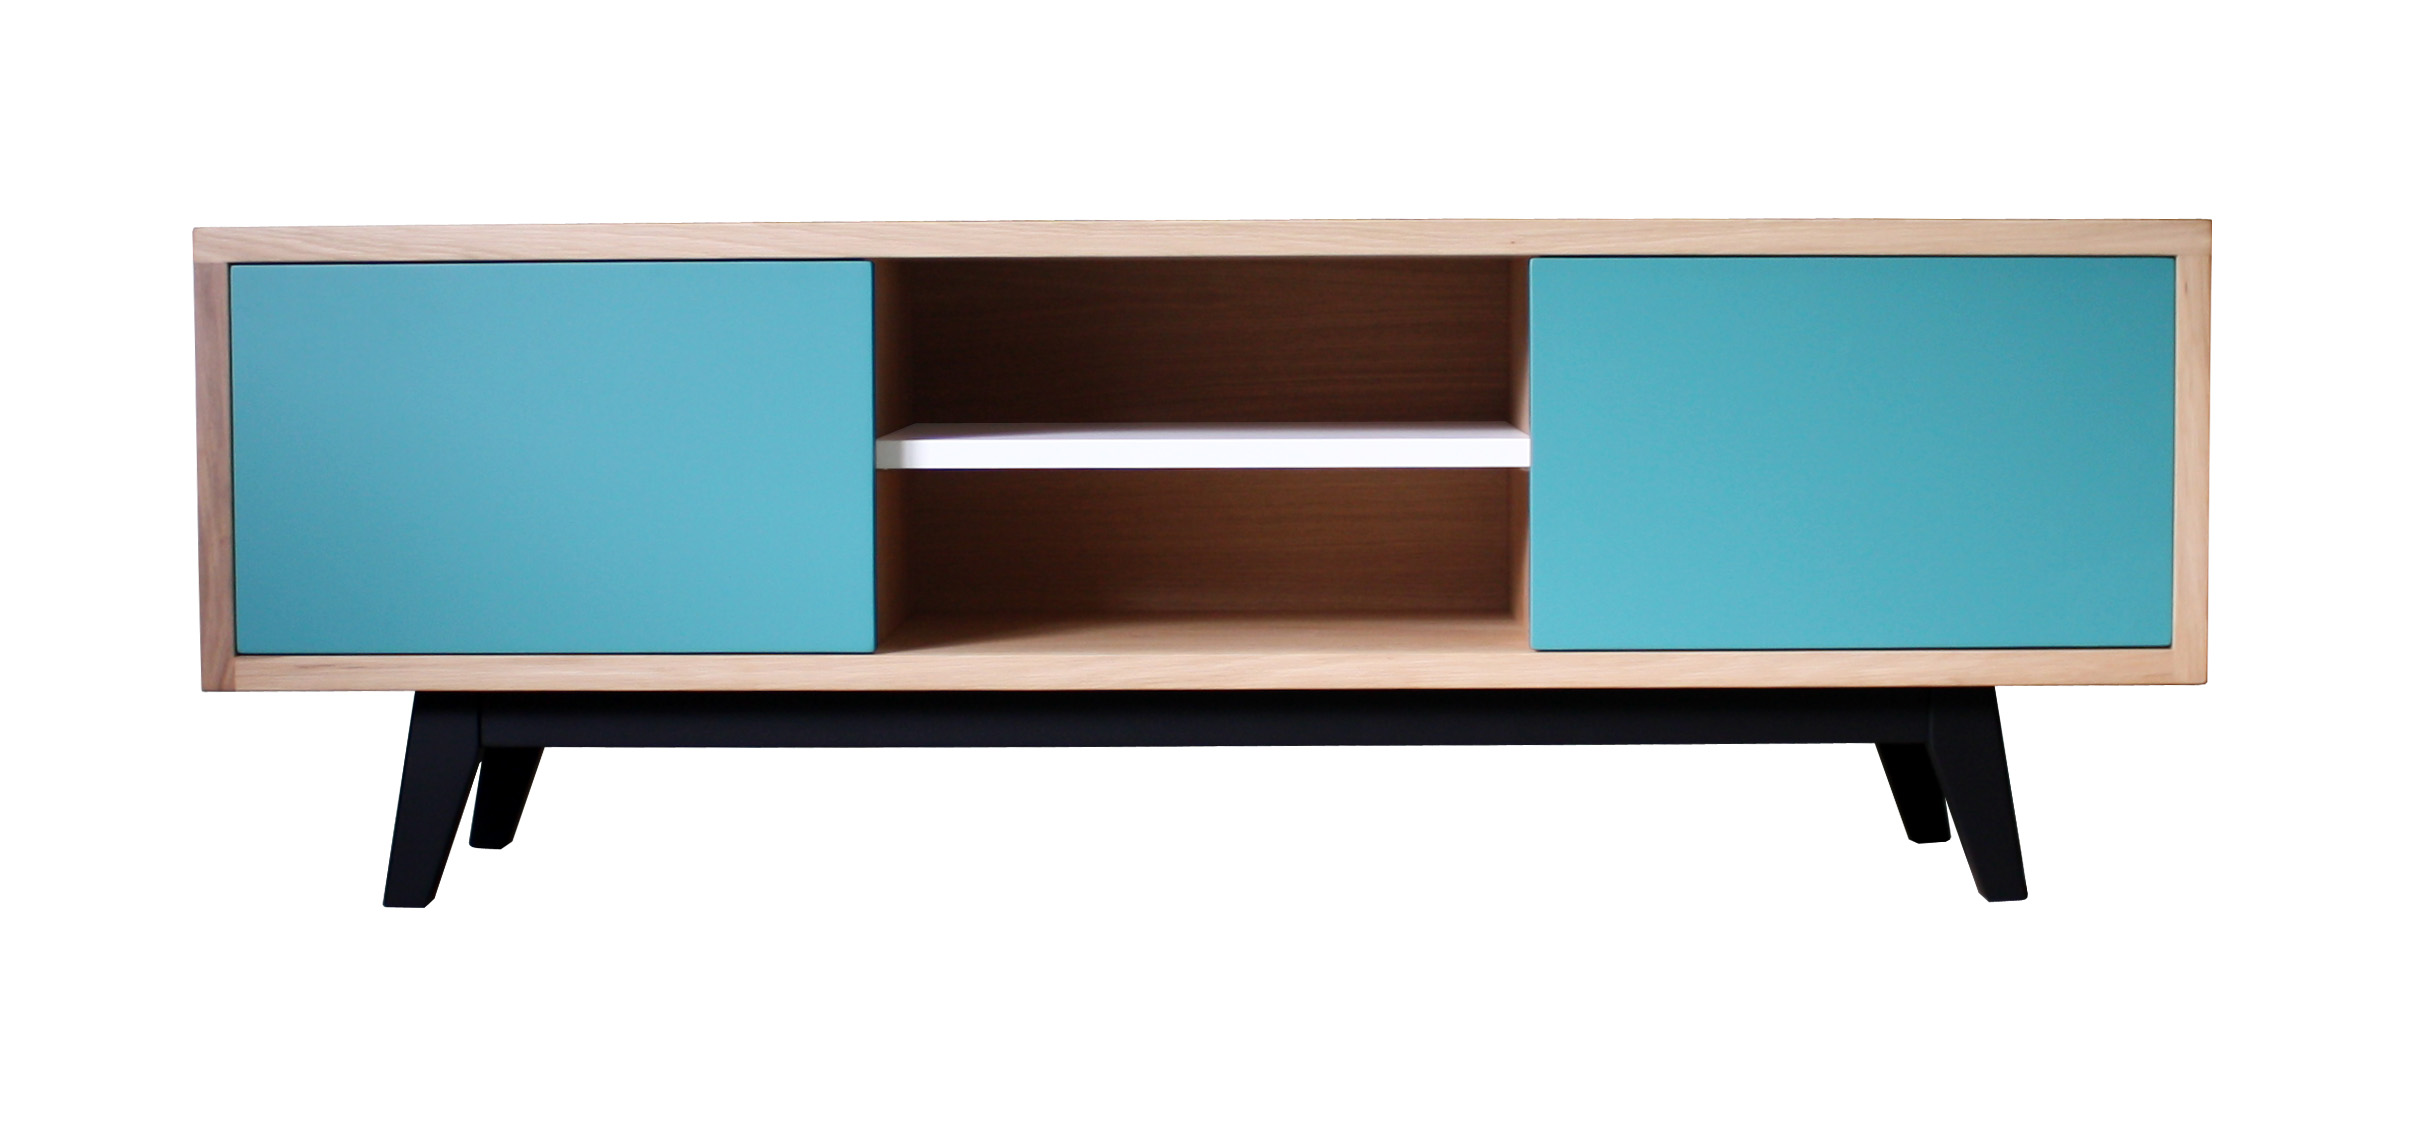 table basse scandinave bleu canard sammlung von design zeichnungen als. Black Bedroom Furniture Sets. Home Design Ideas